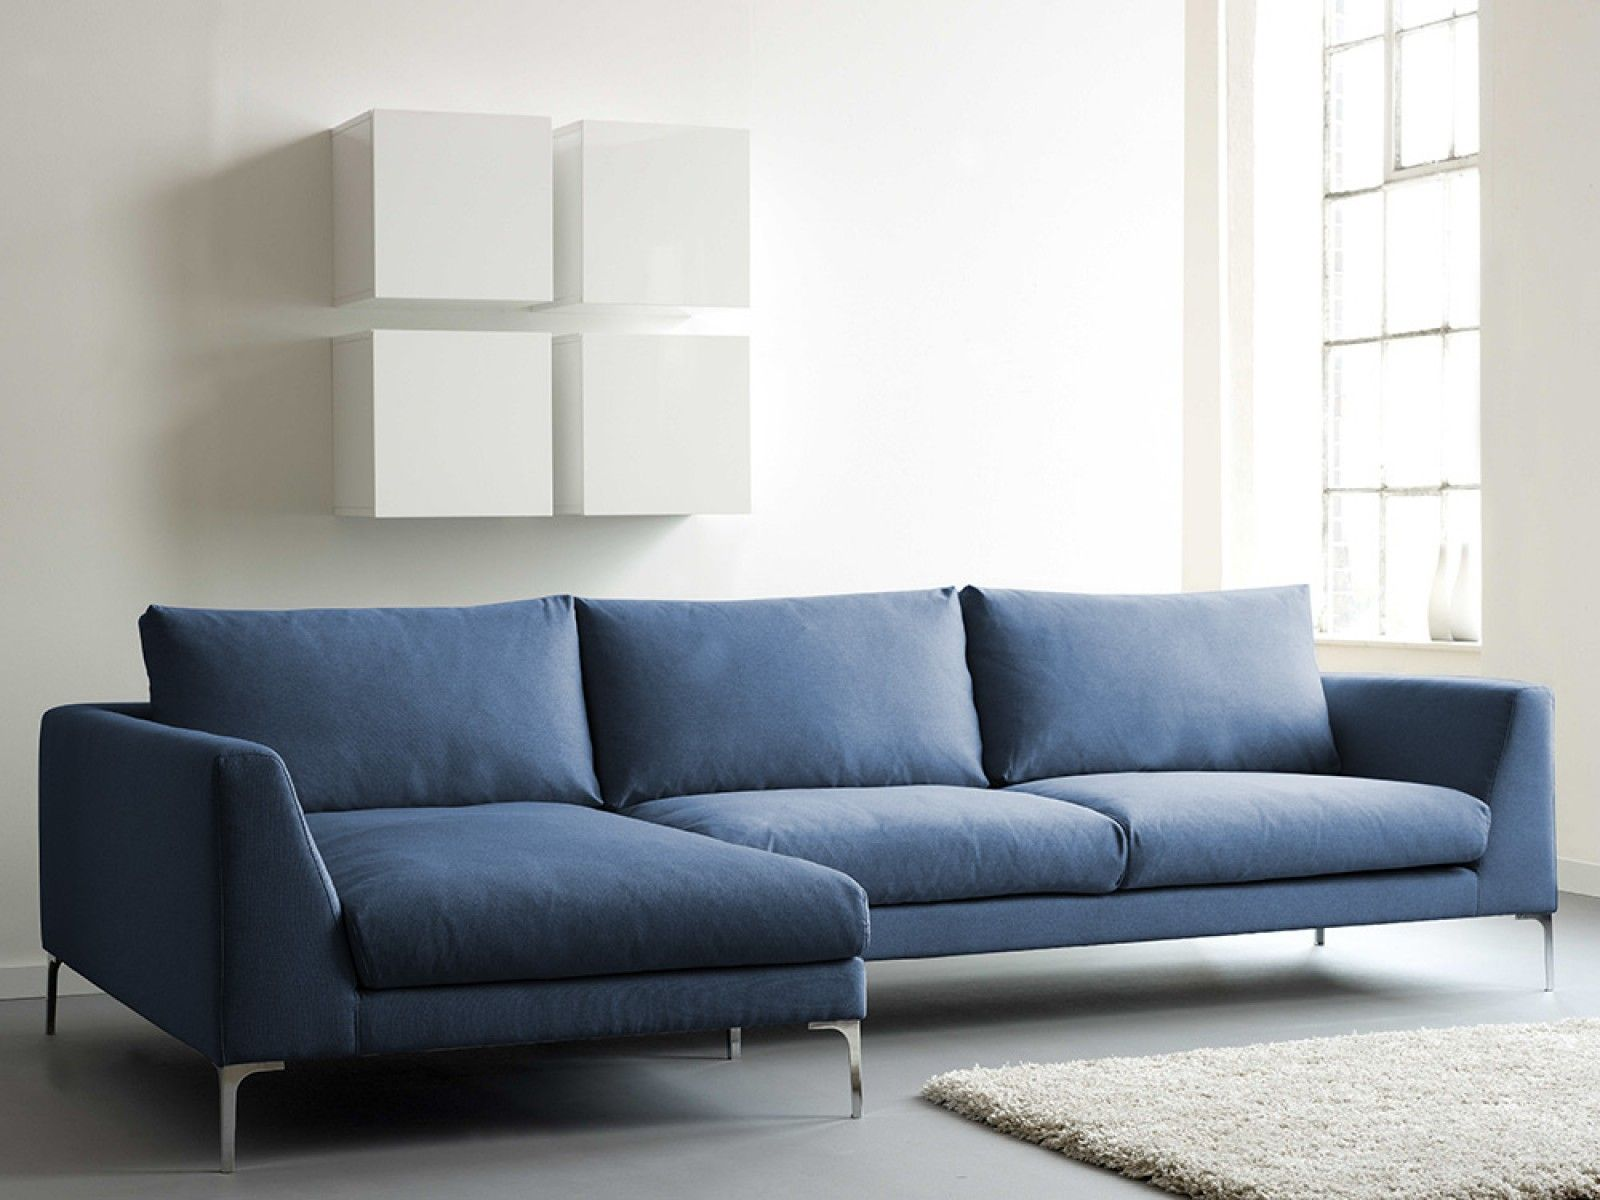 chesterfield sofa set uk arhaus leather blue easy pieces the velvet edition ...